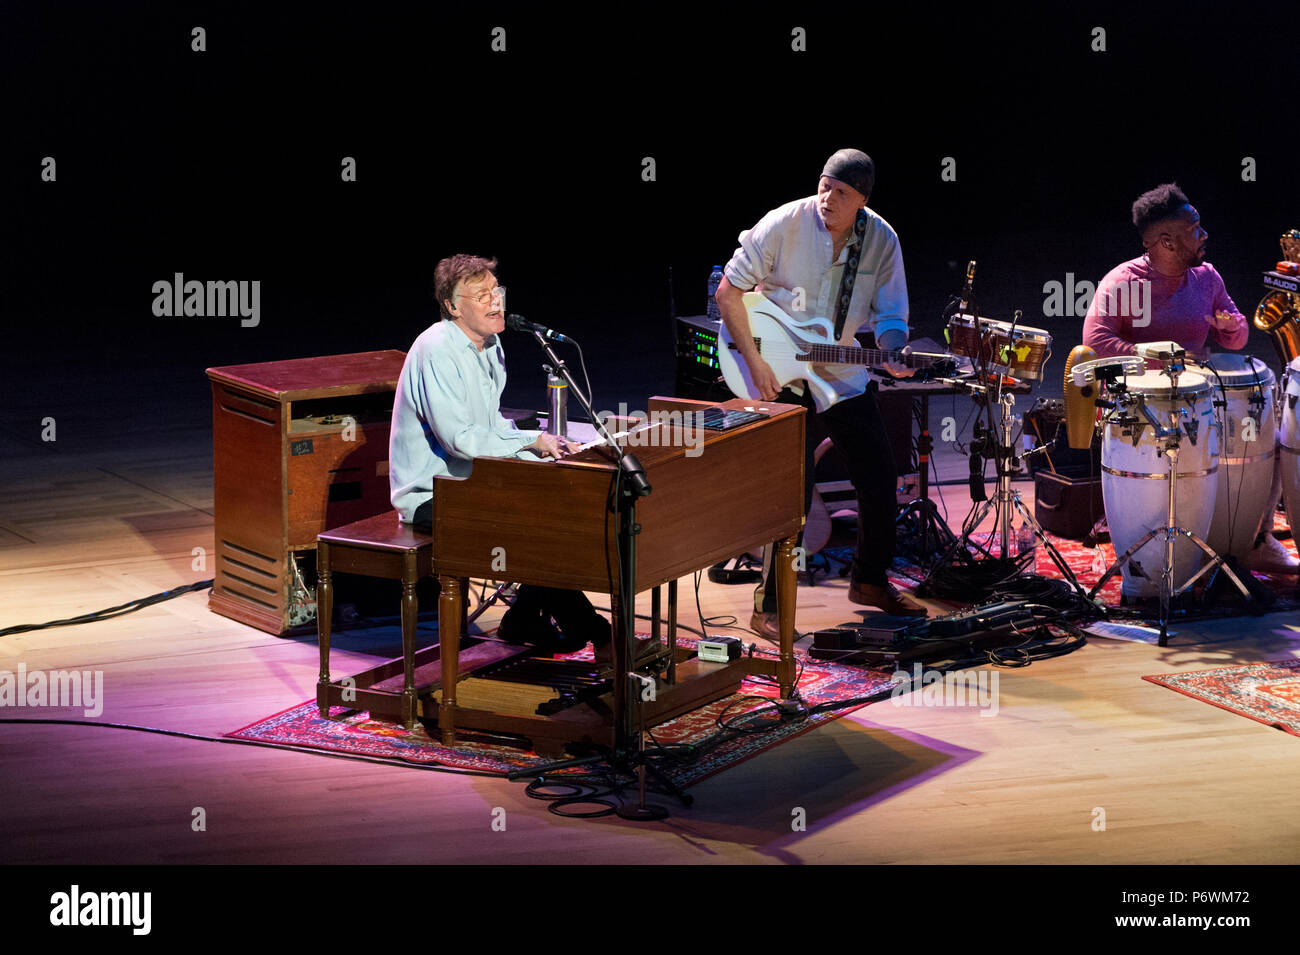 Manchester, UK. 2nd July, 2018. Legendary rock musician Steve Winwood in concert with his band at Bridgewater Hall, Manchester. Winwood has been a member of several famous bands, notably The Spencer Davis Group, Traffic and Blind Faith and also had a successful solo career in the 1980s. Credit: John Bentley/Alamy Live News - Stock Image